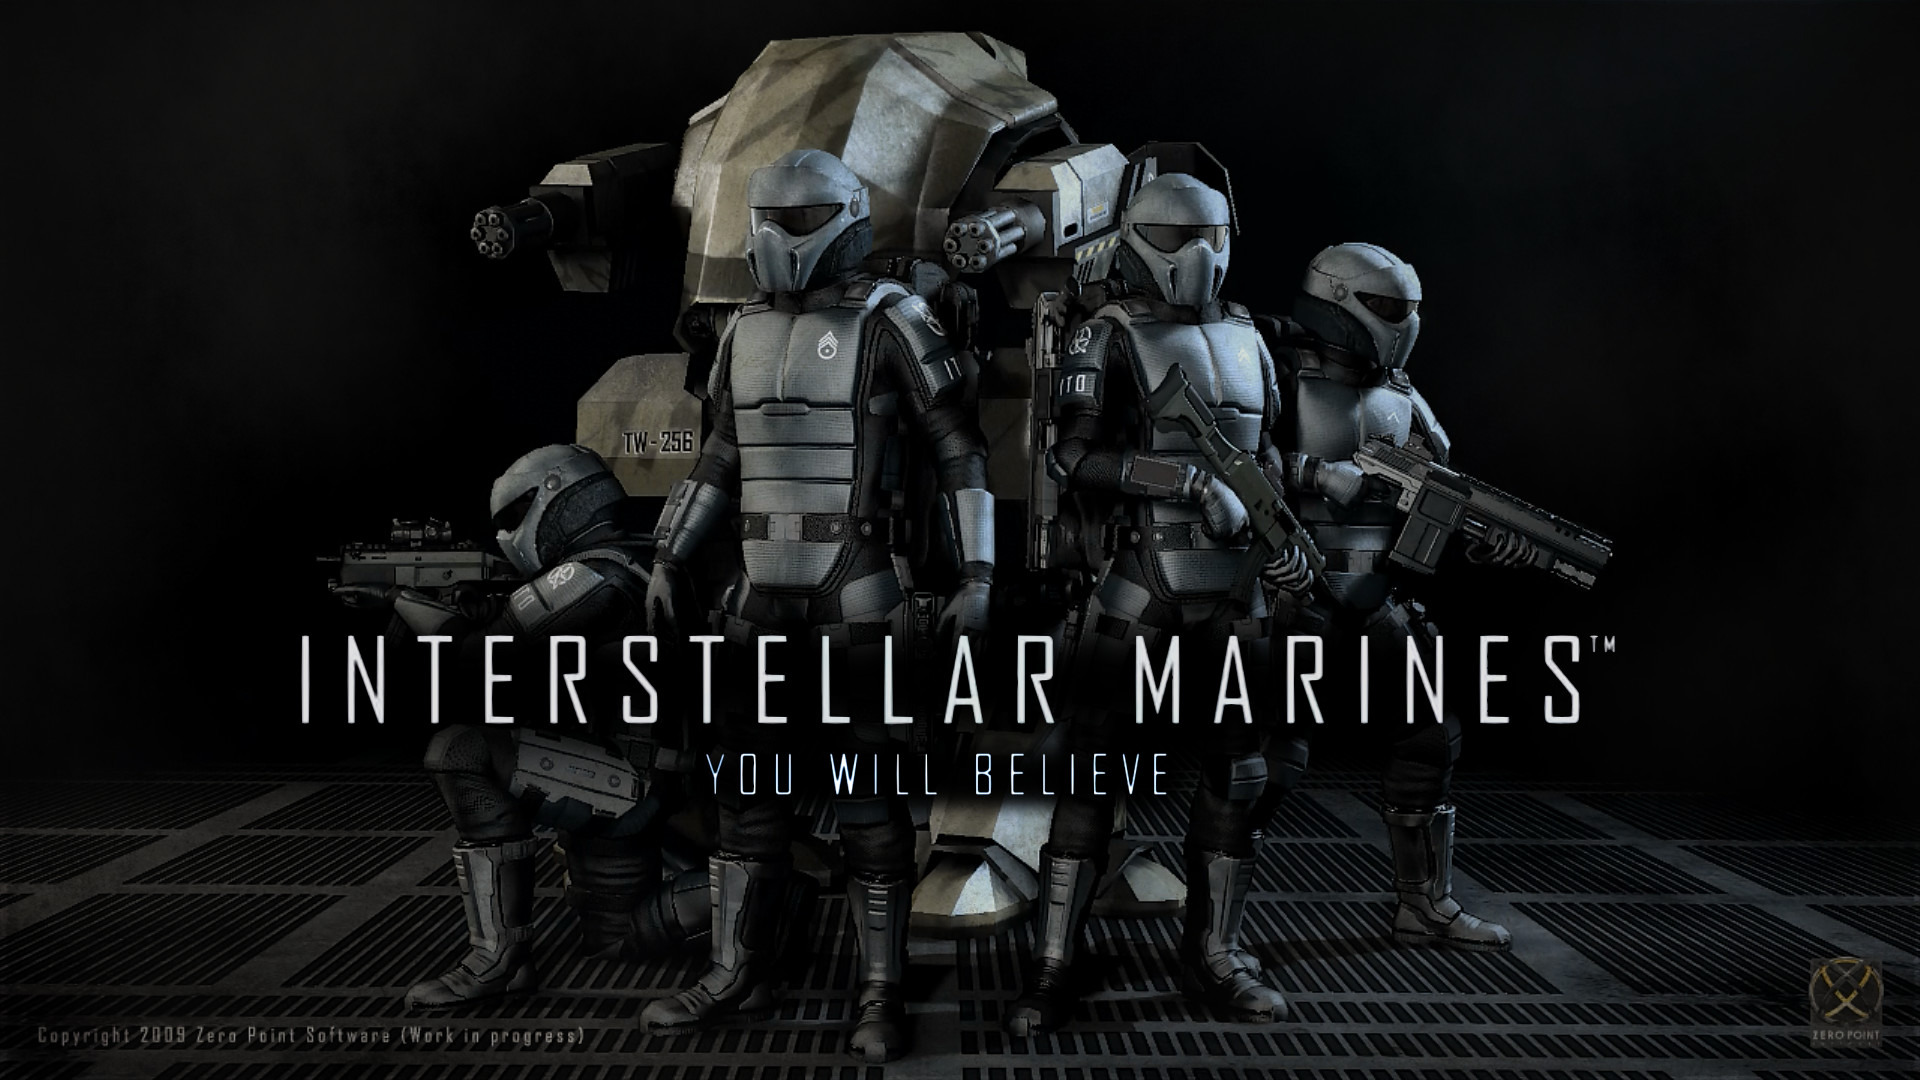 1920x1080 Interstellar Marines desktop fanmade by Superman999 on DeviantArt